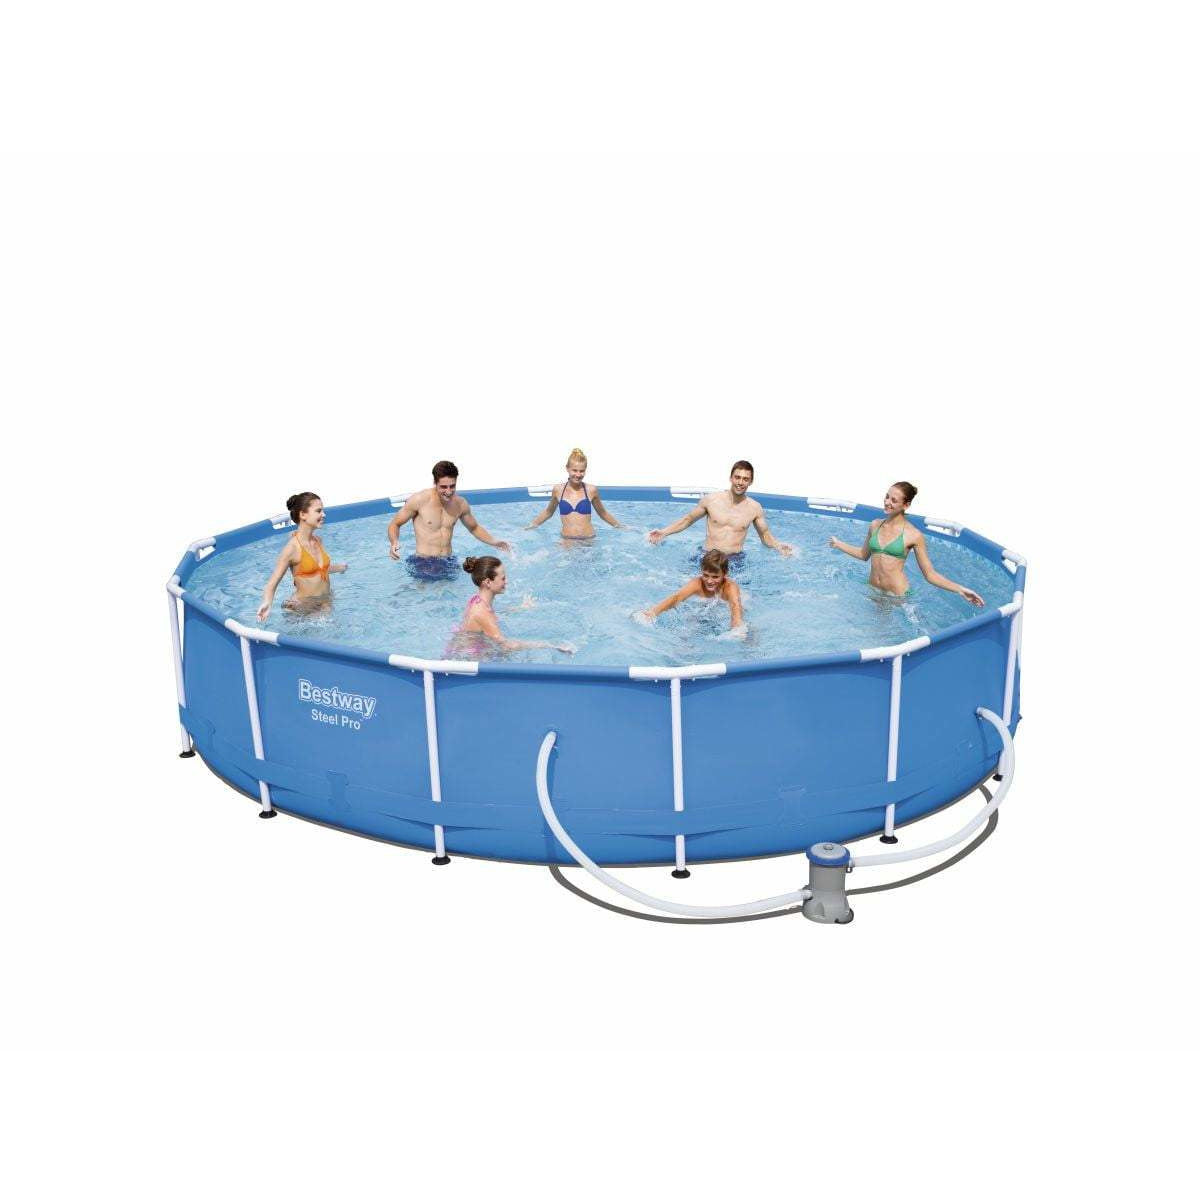 "Bestway 14' x 33""/4.27m x 84cm Steel Pro Frame Pool Set - rafplay"